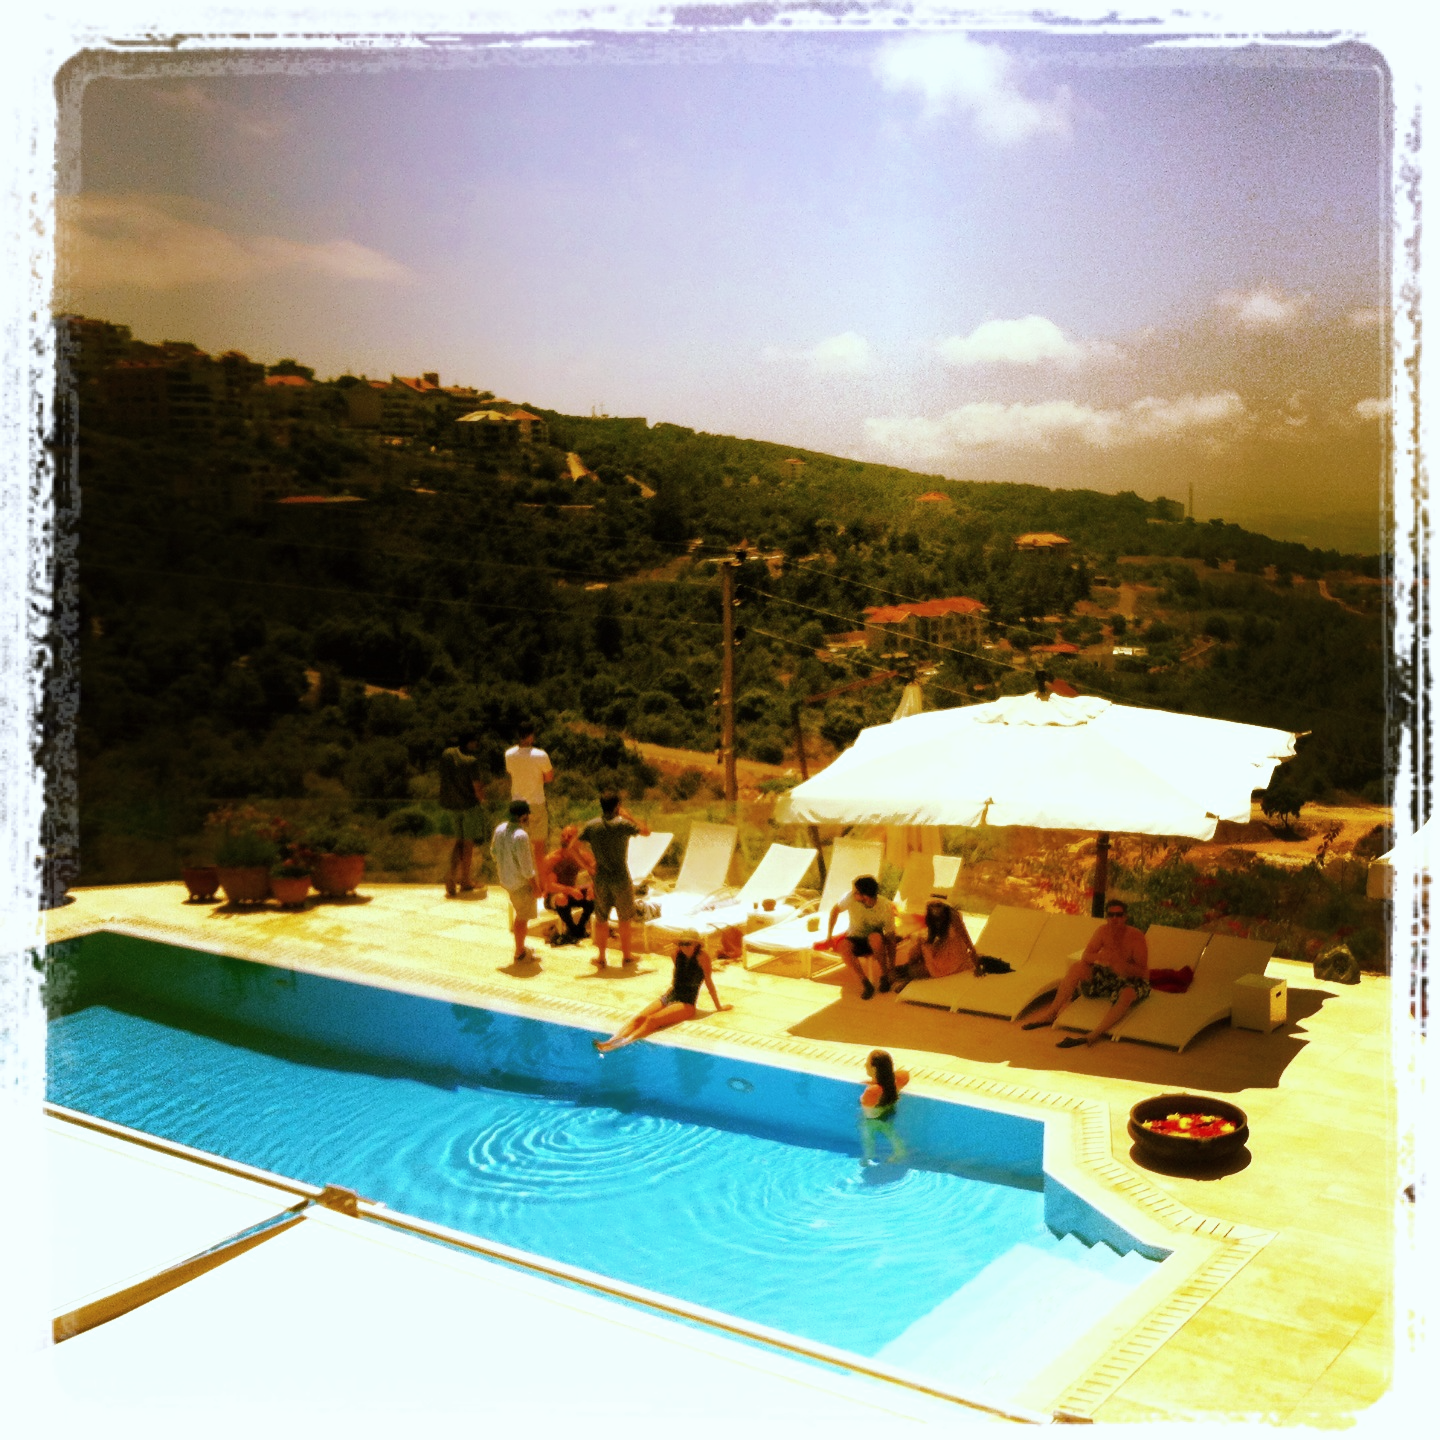 Pool Time, Lebanon